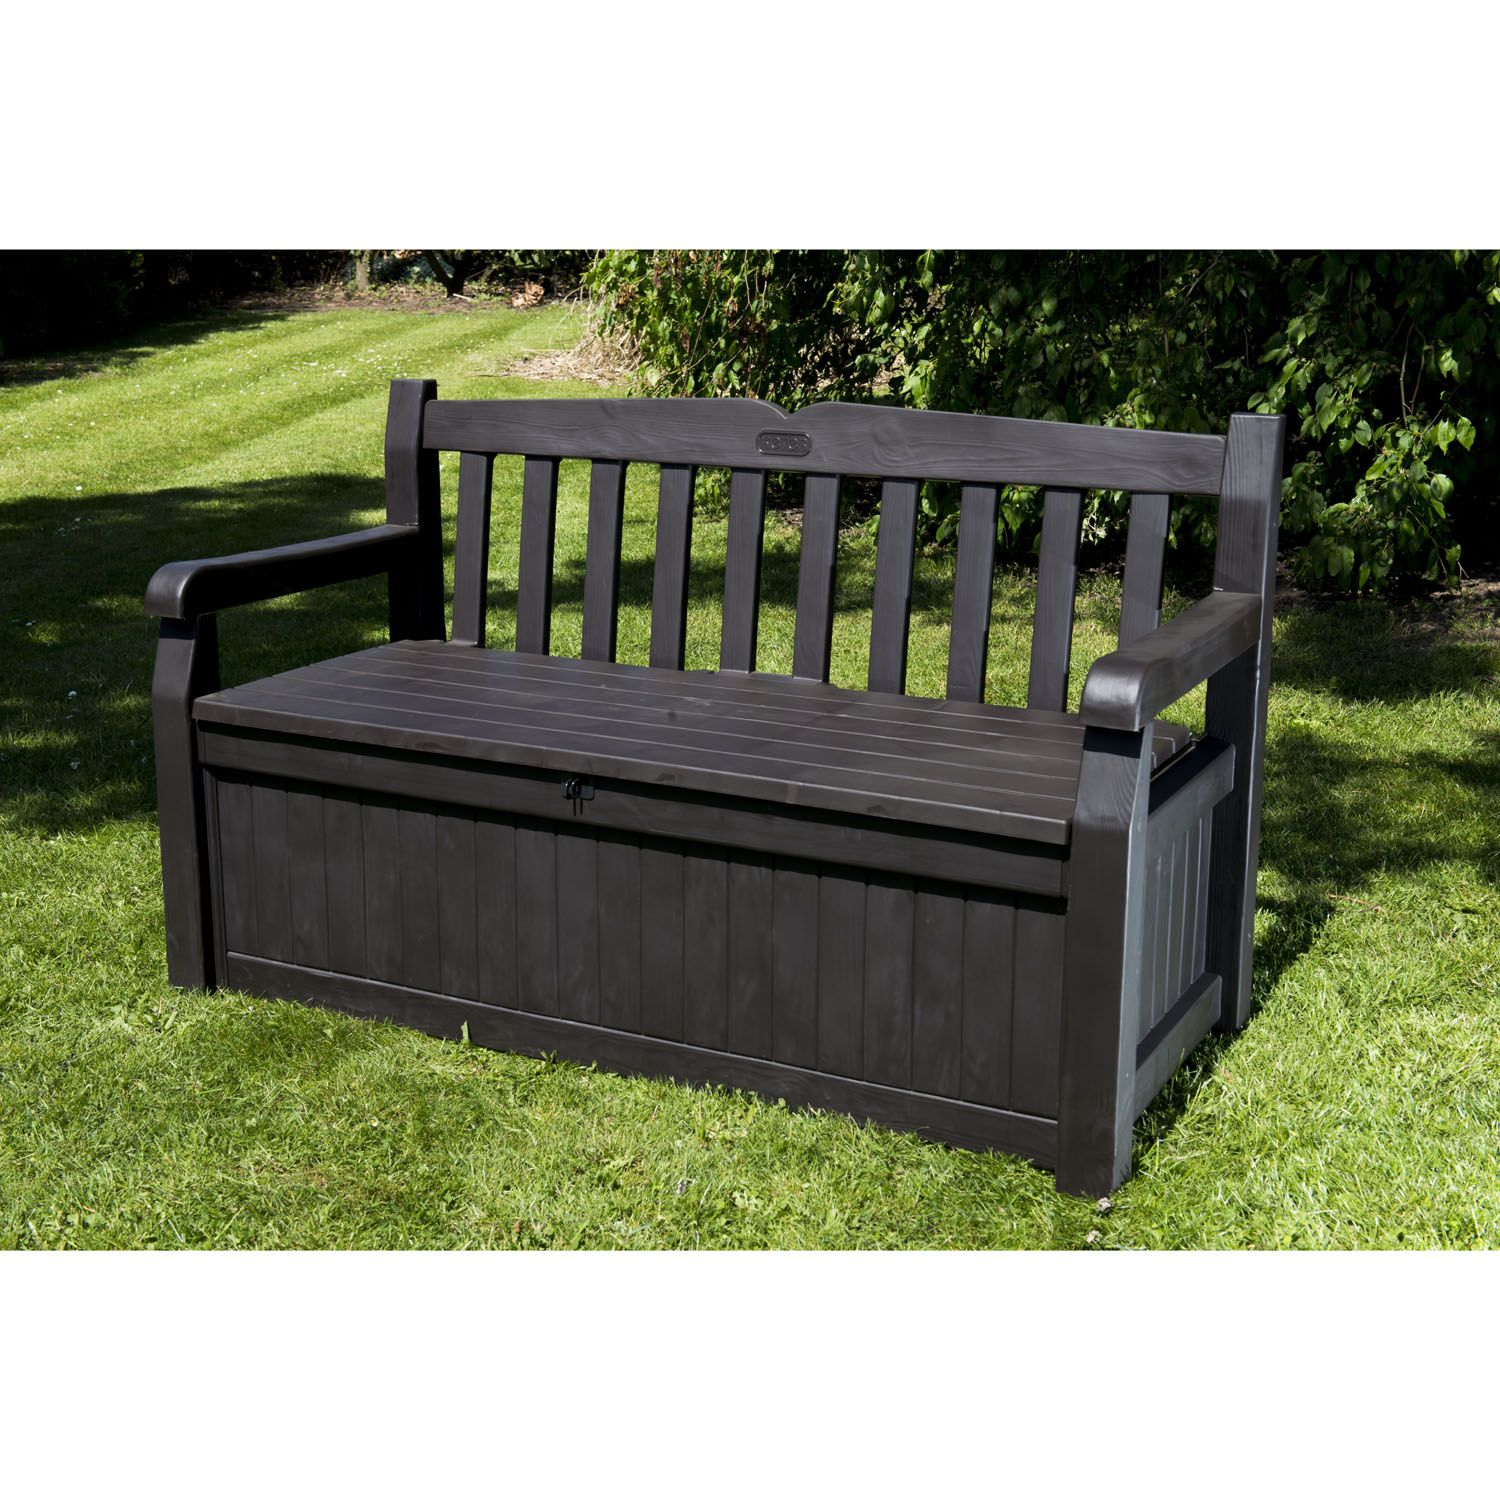 digital recycled plastic cork olympus benches bench products park garden camera